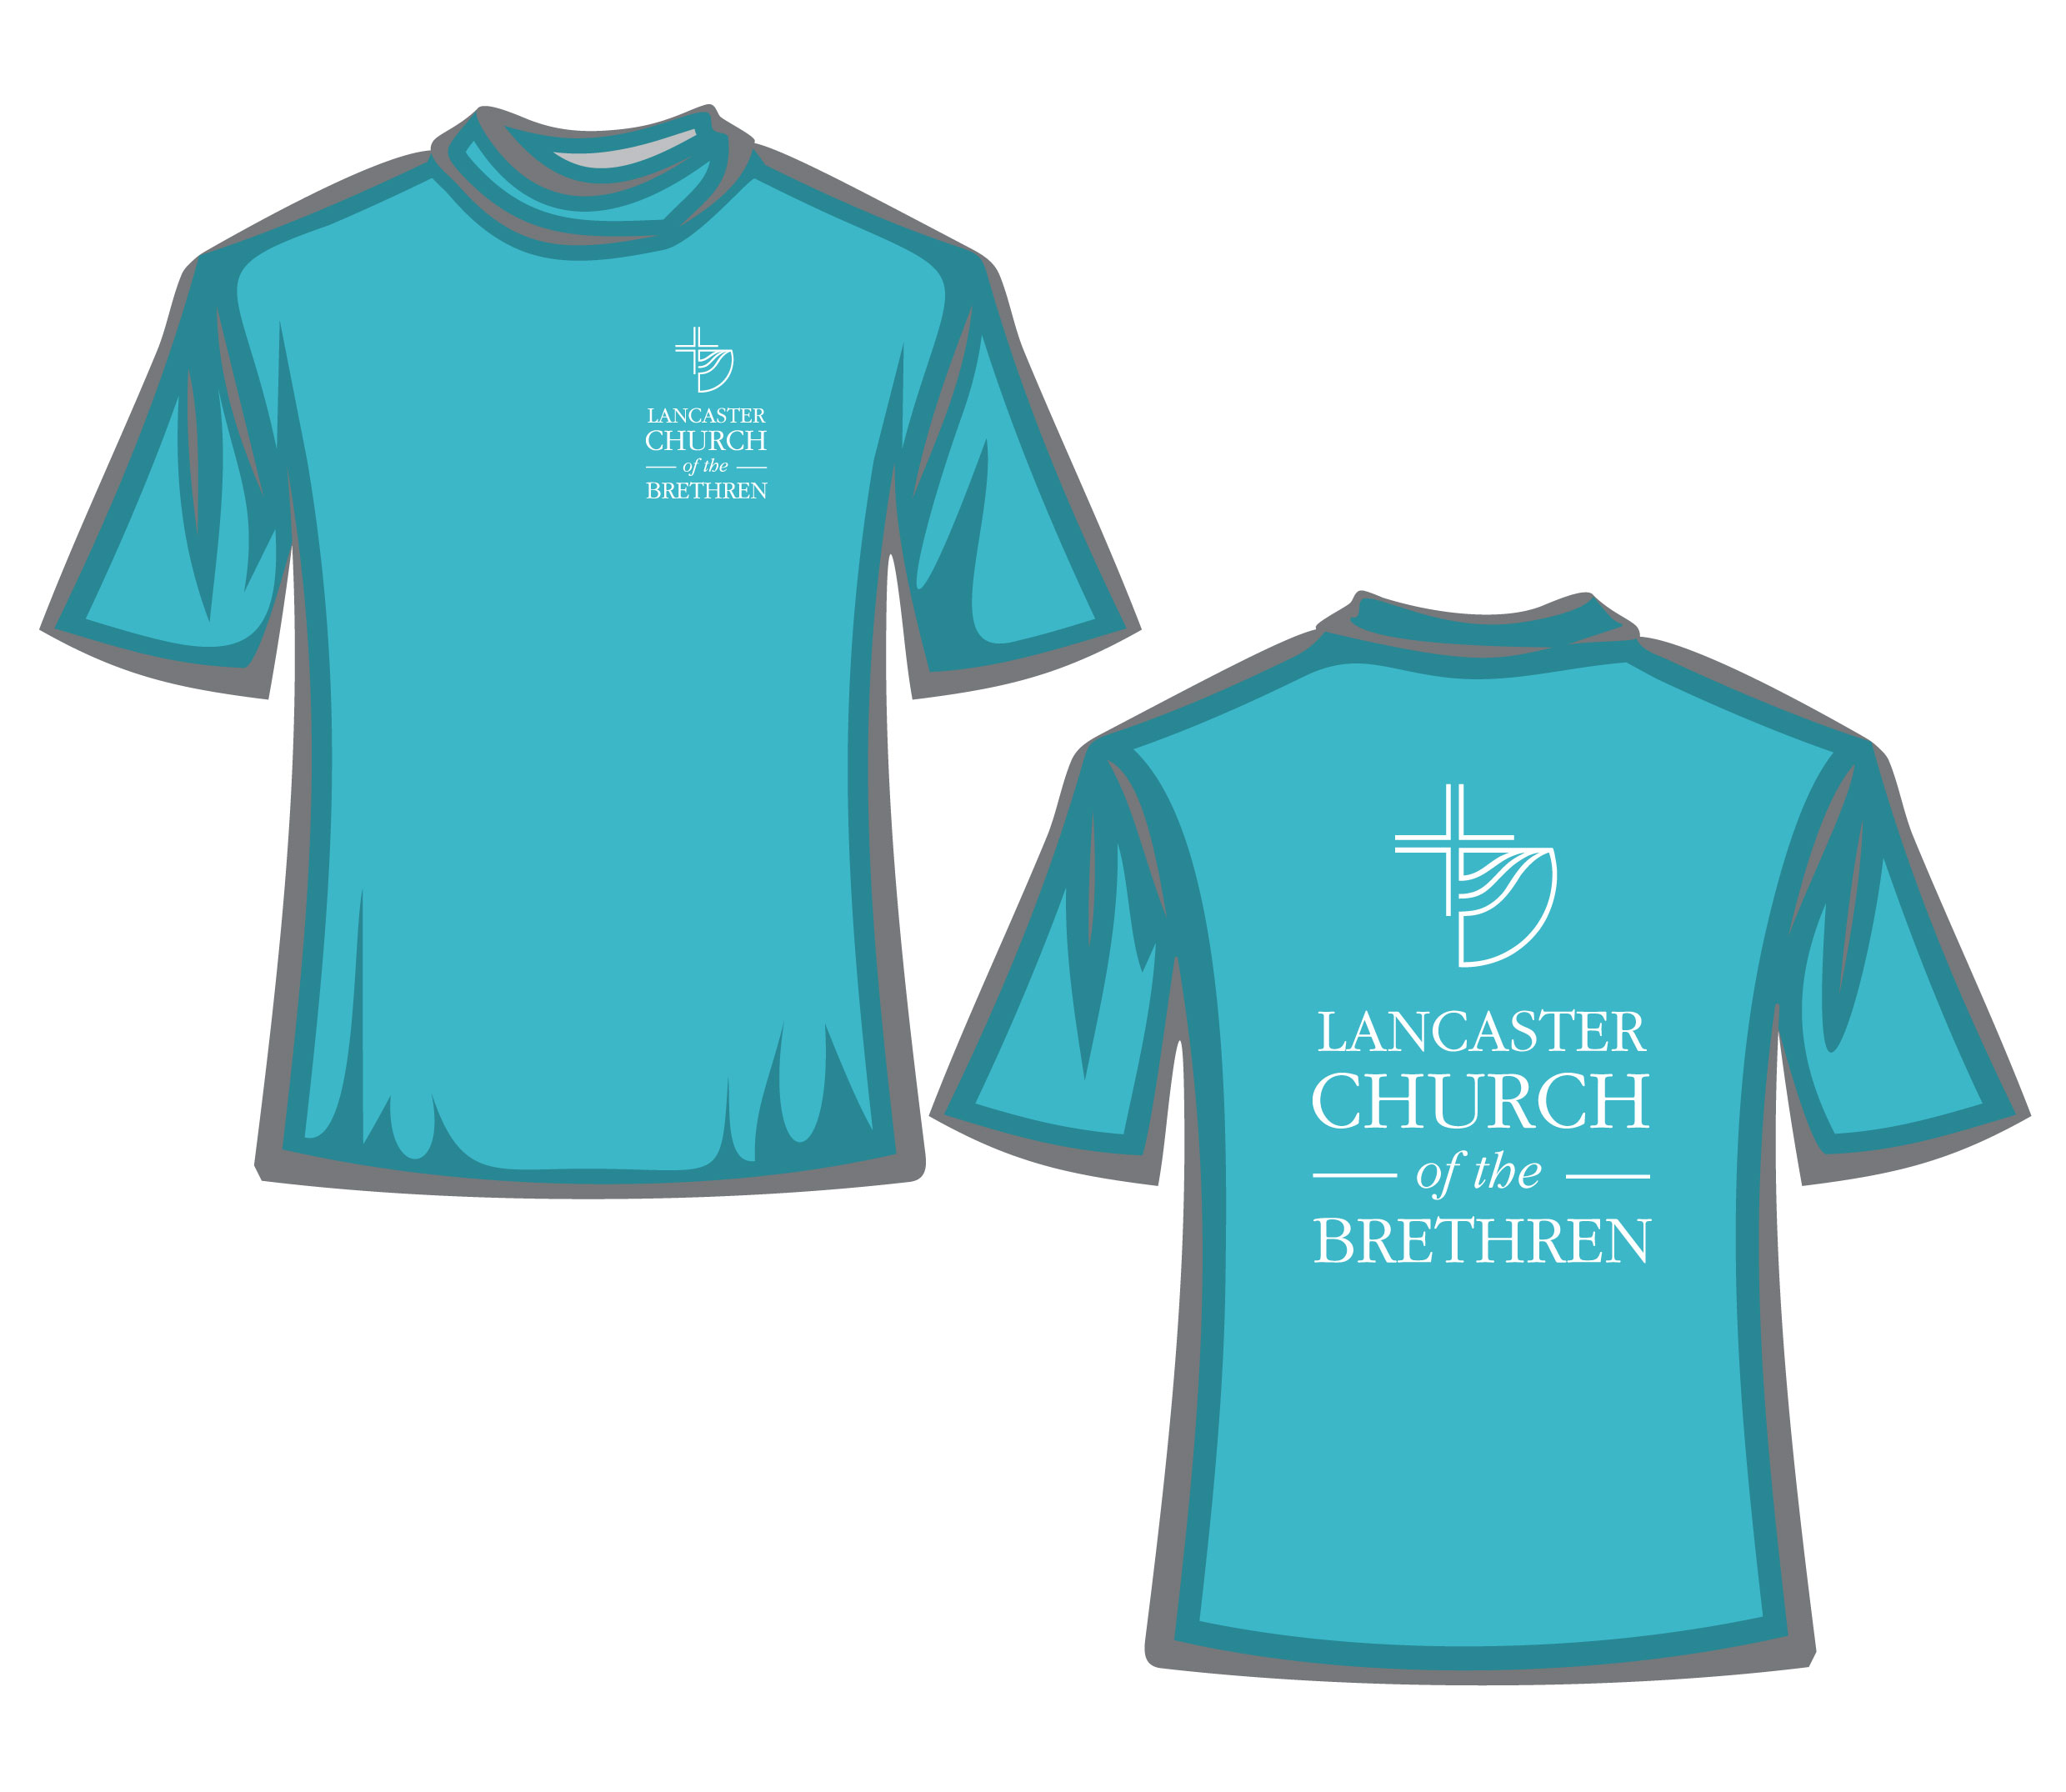 lcob t shirts lancaster church of the brethrenlancaster